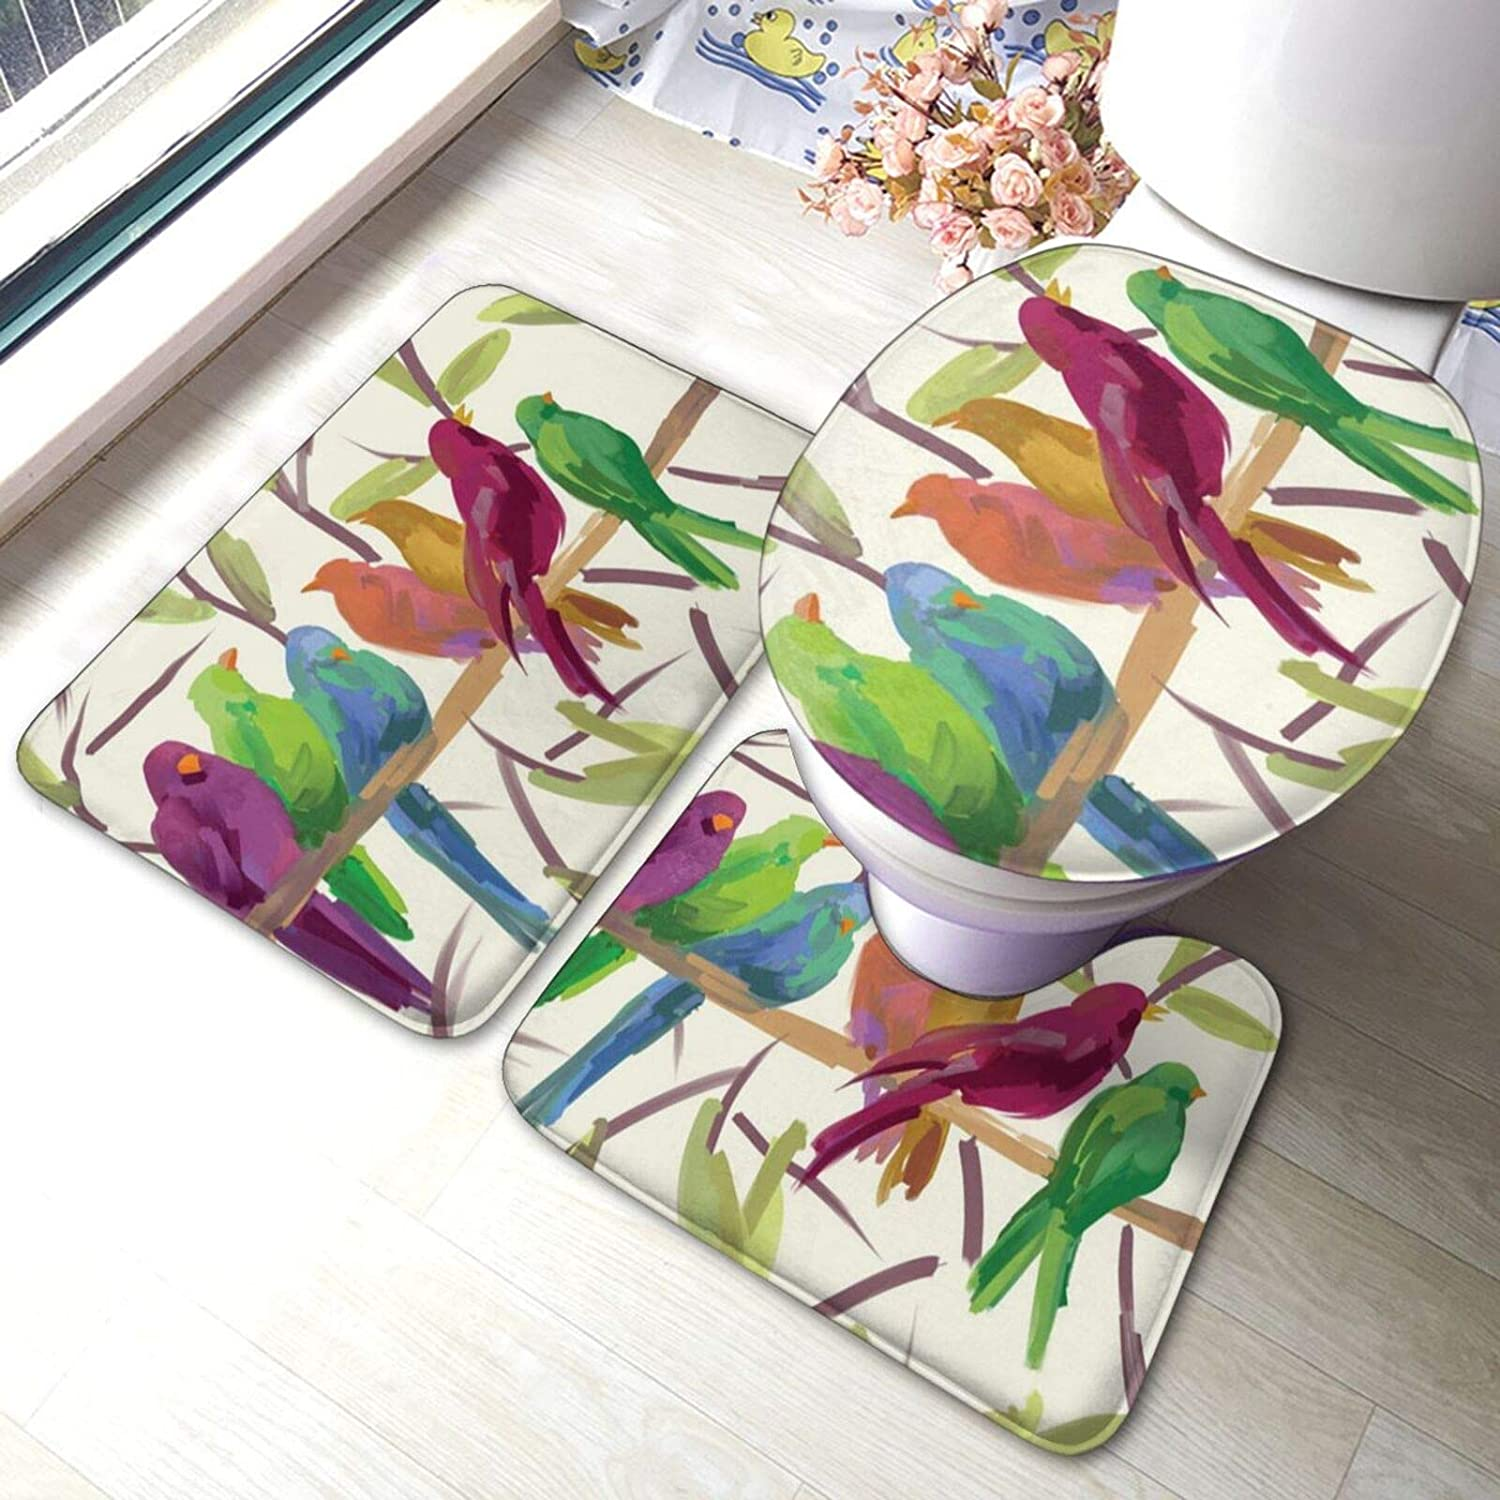 Watercolor Bird Flock Together A surprise price is realized Rest On Print R Bathroom Tree The low-pricing